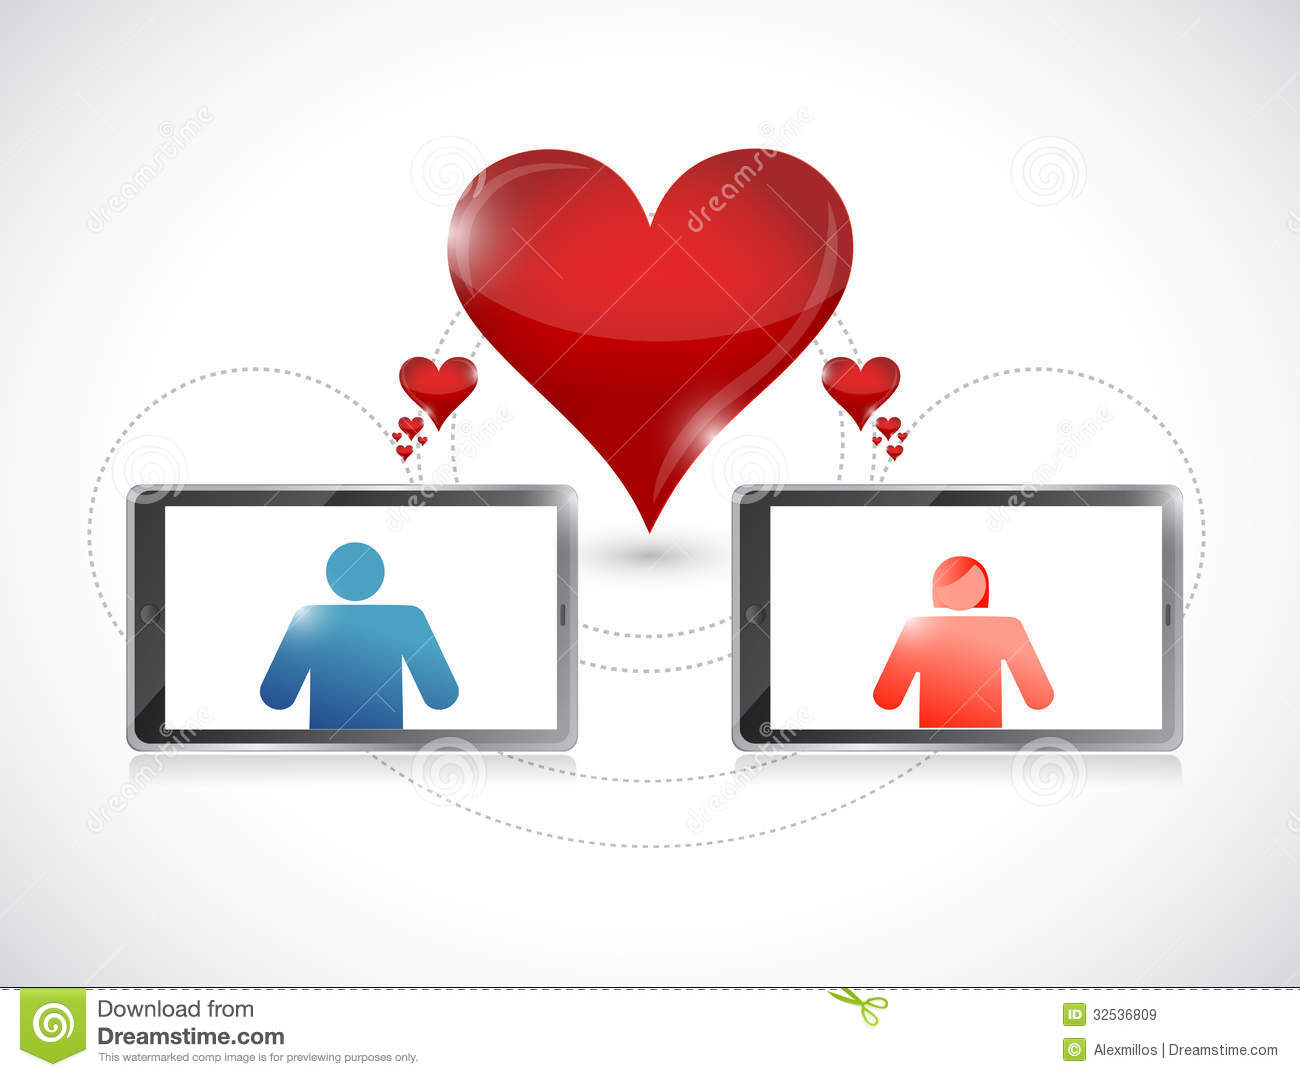 Concepts of online dating